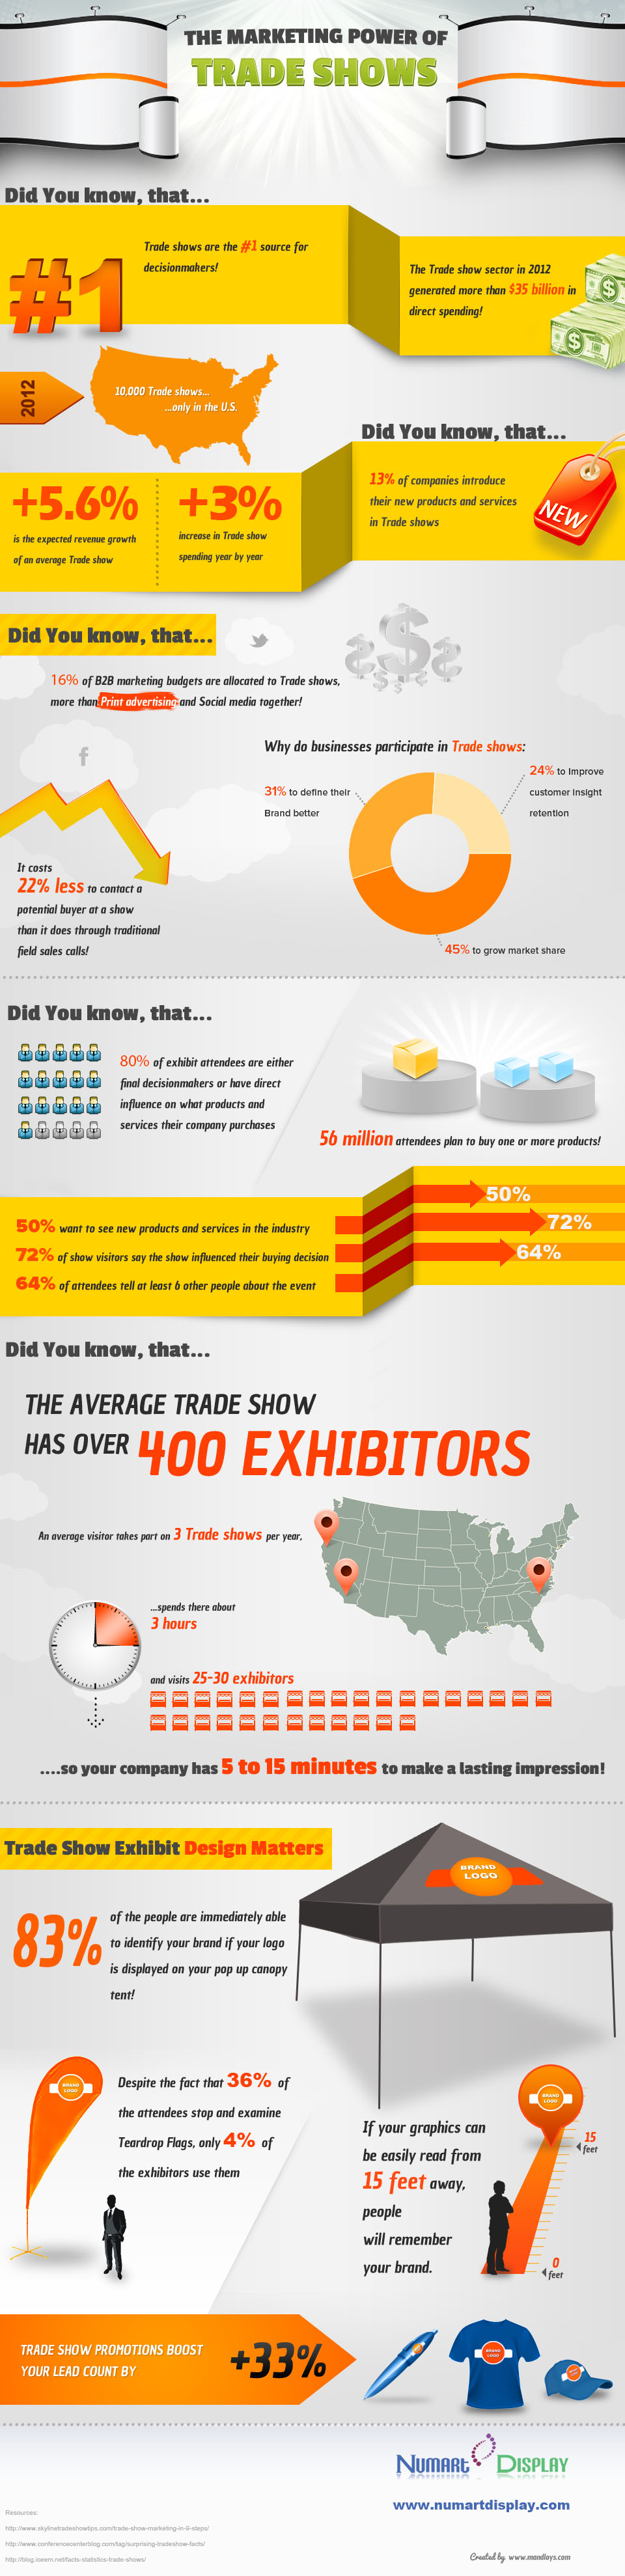 marketing_power_of_trade_shows_infographic